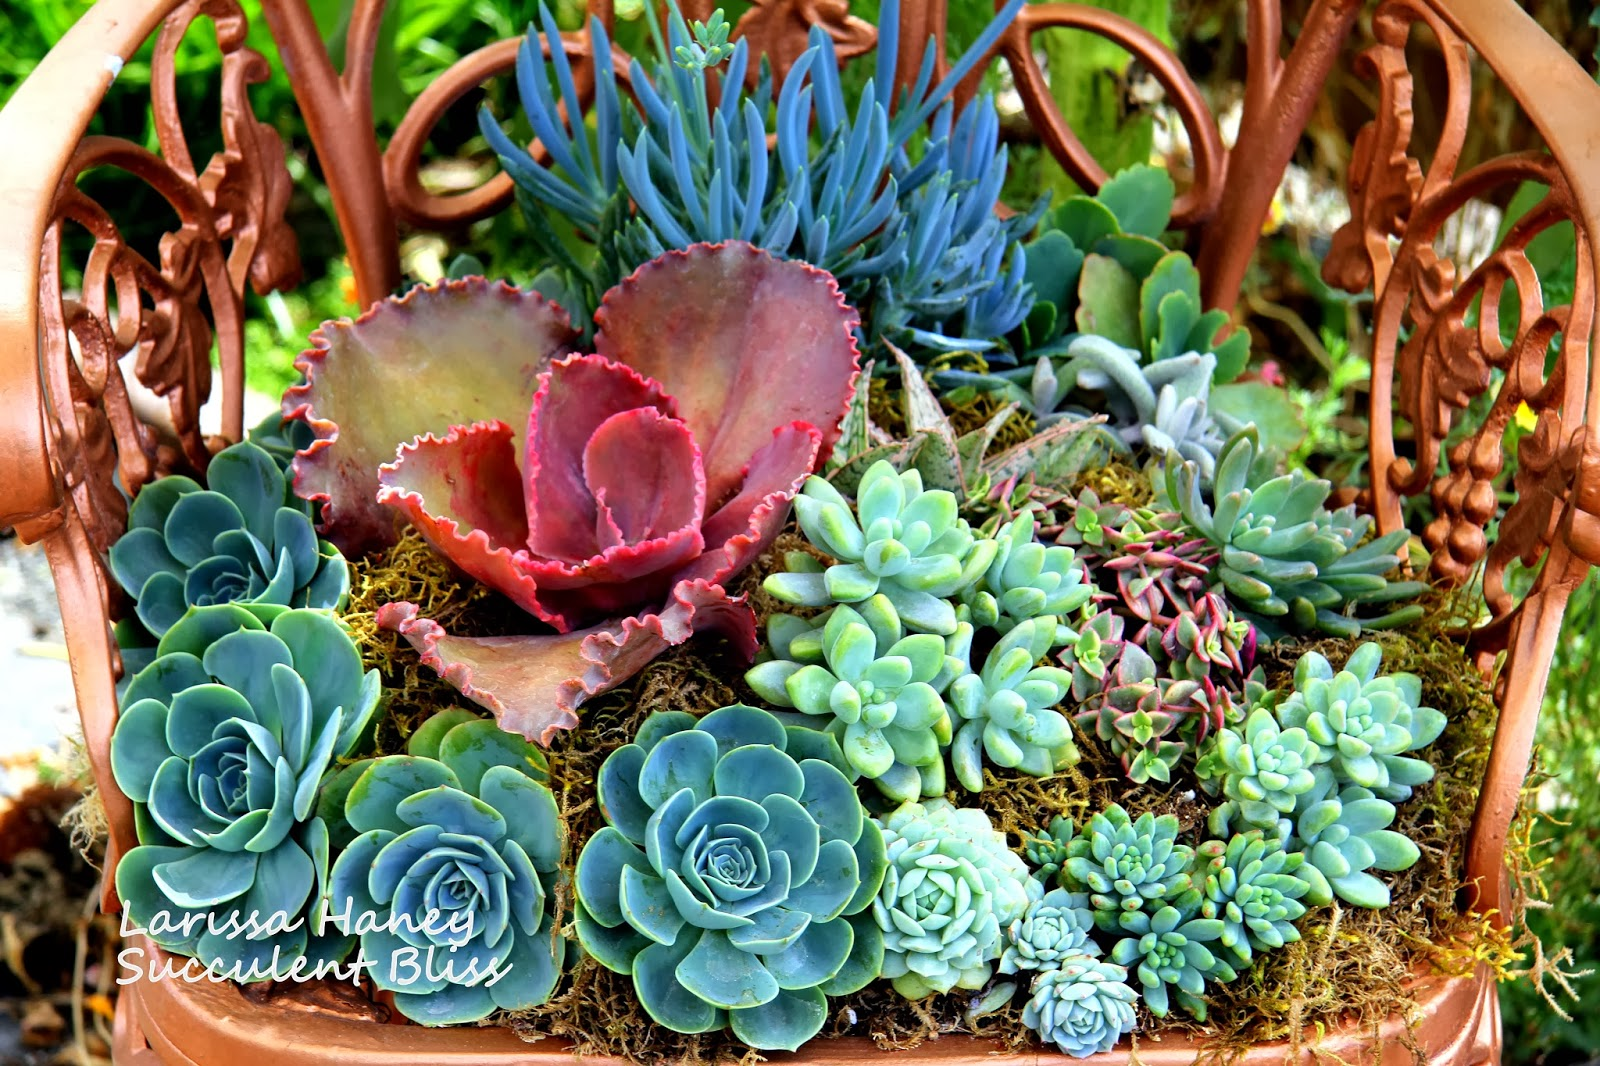 Succulent Bliss on